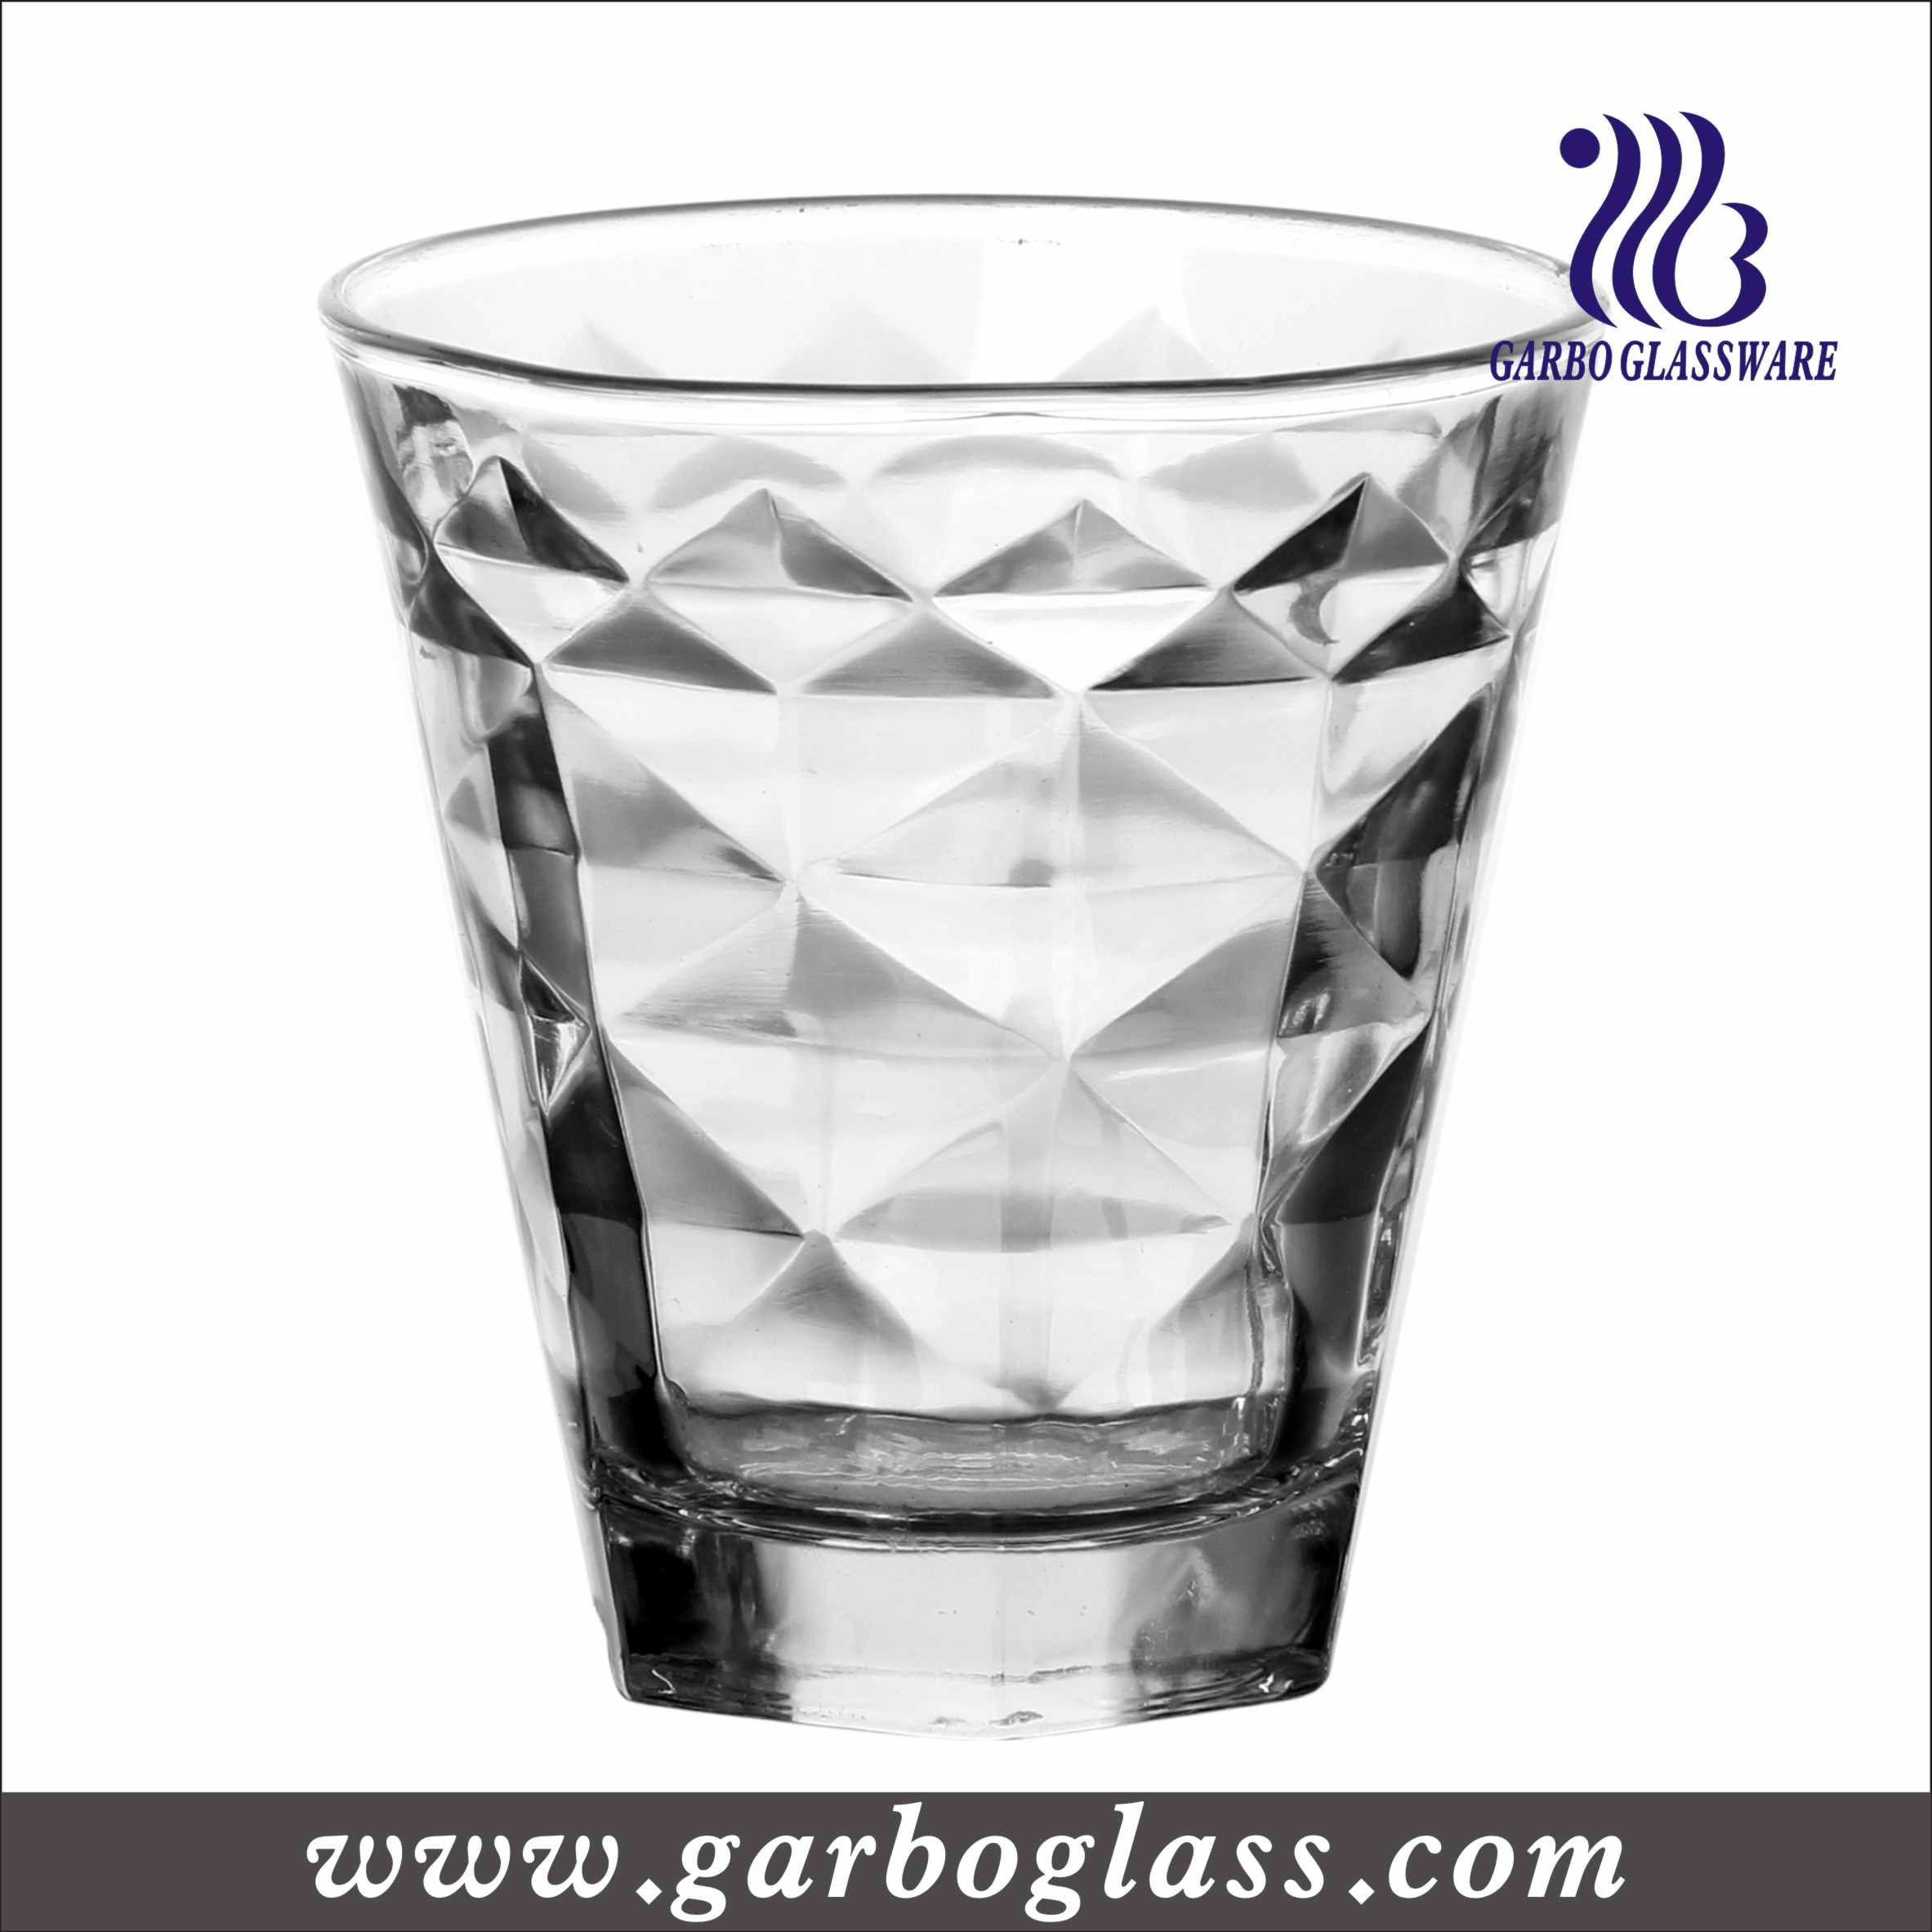 High Quality And Transparent Pressed Machine Made Glass Tumbler, For